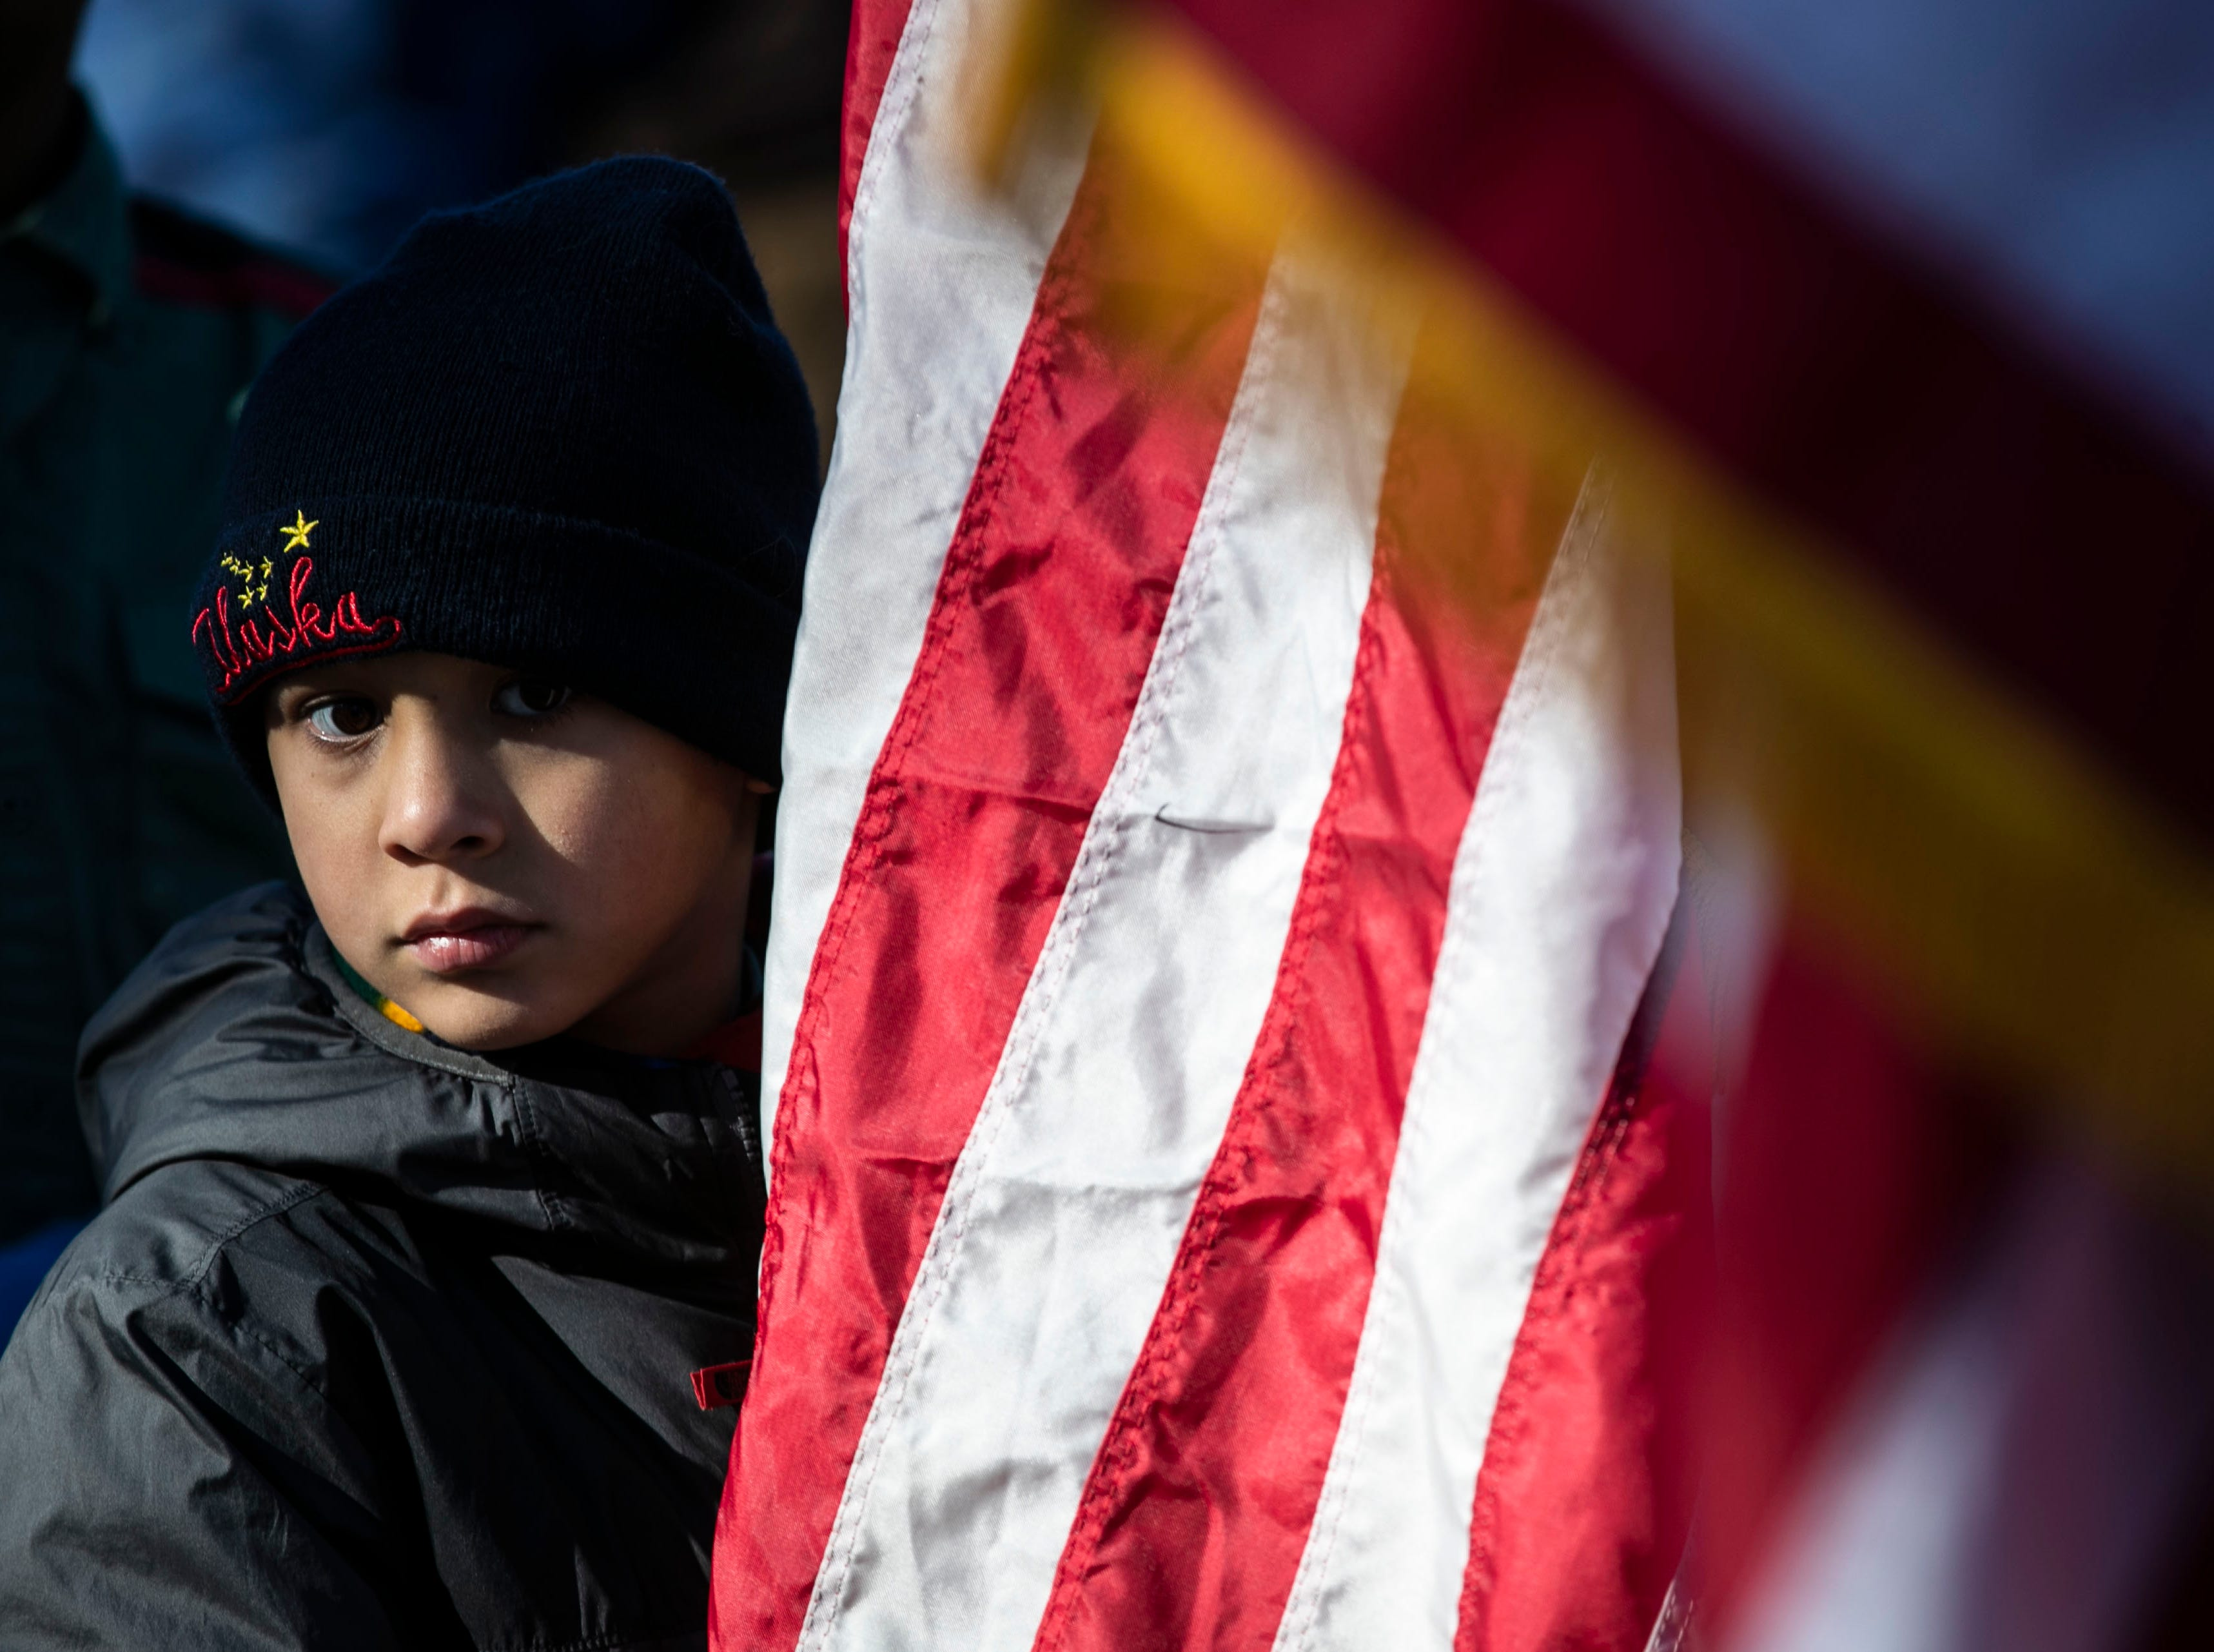 Jake Romero peers around an American flag before a short walk to Cave Hill Cemetery as a remembrance to military veterans during a Flags 4 Vets event Saturday, Nov. 10, 2018. Veterans Day is Sunday, Nov. 11. Around 250 volunteers placed nearly 7,500 flags on military veteran gravesites.